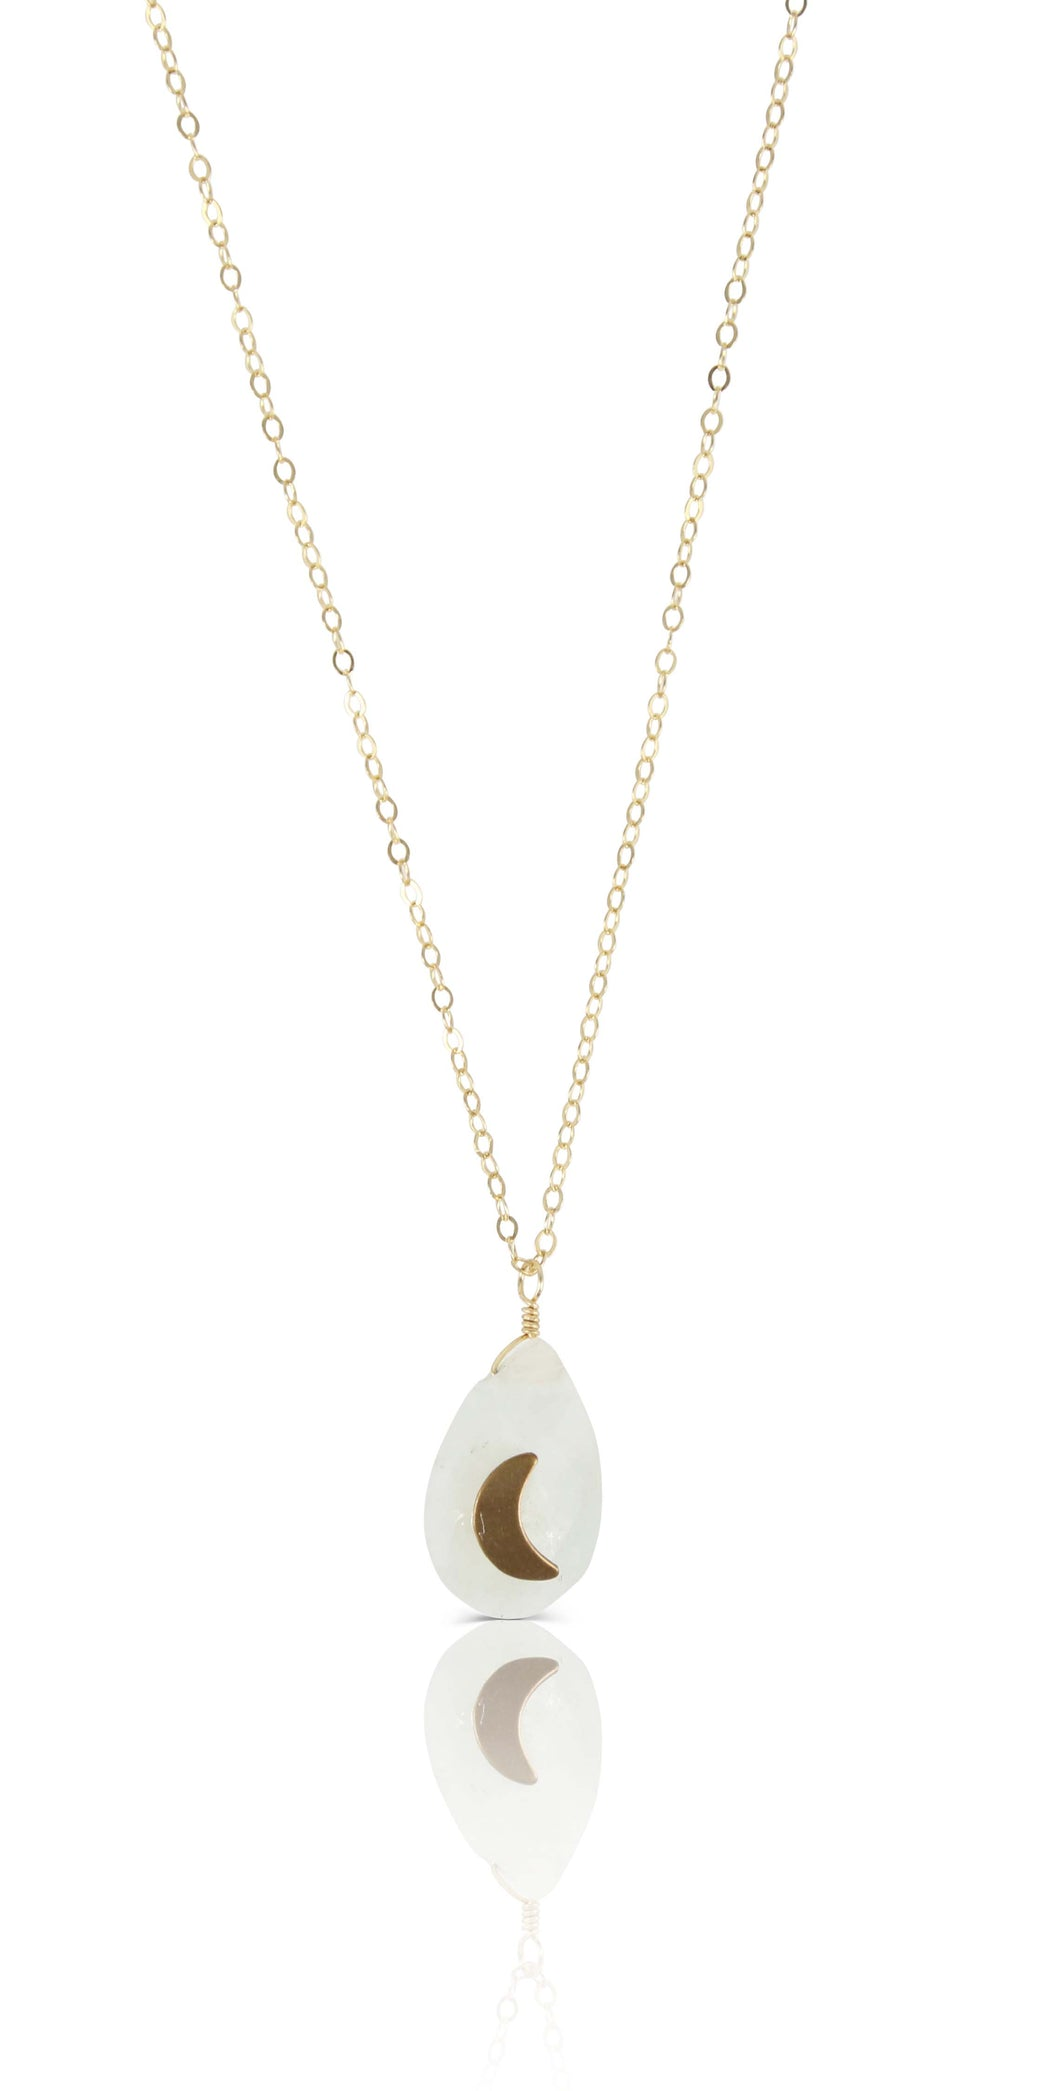 Moonshadow Moonstone Necklace